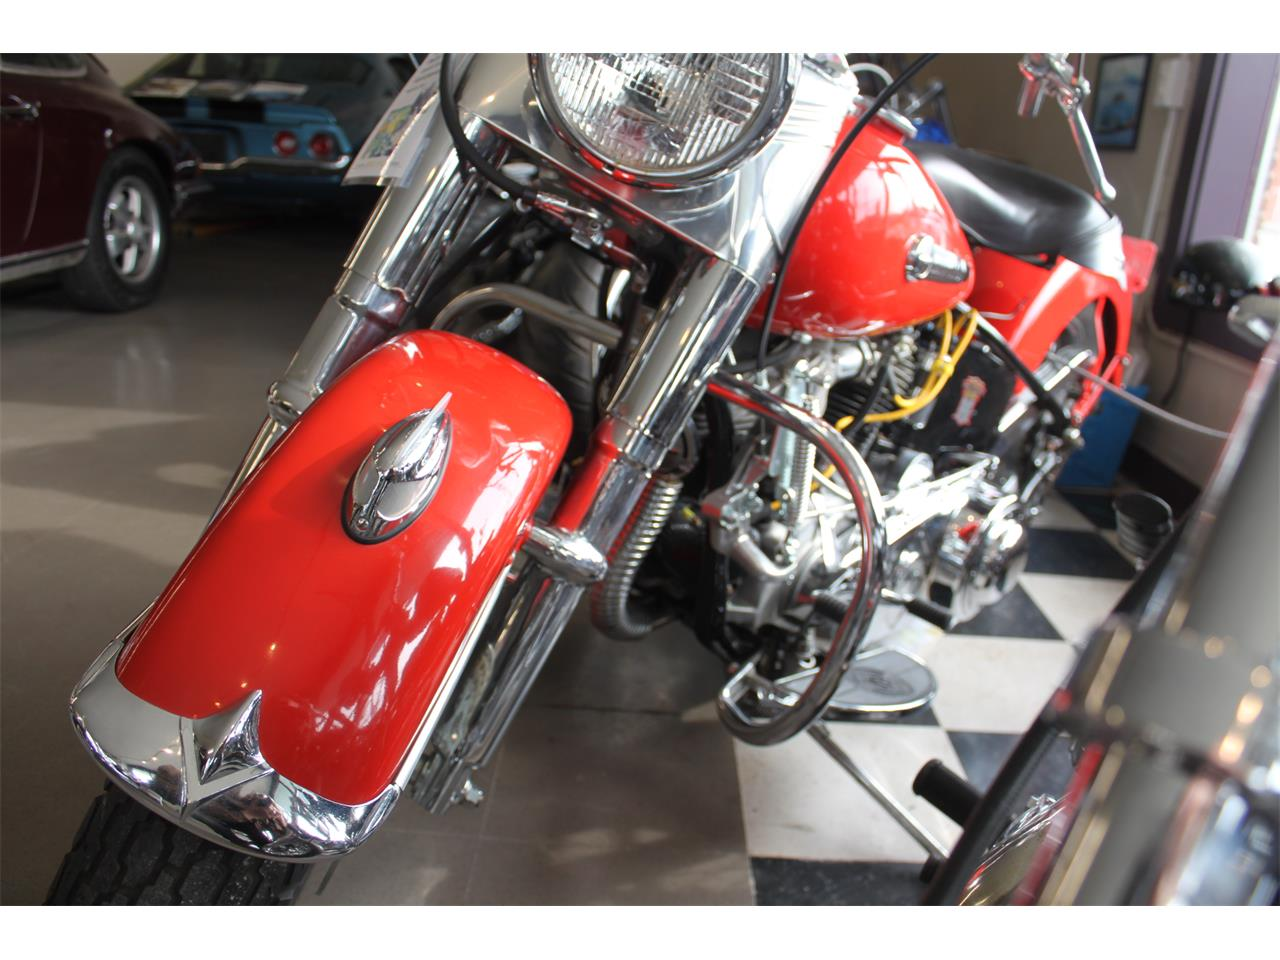 1950 Harley-Davidson Motorcycle for sale in Carnation, WA – photo 22